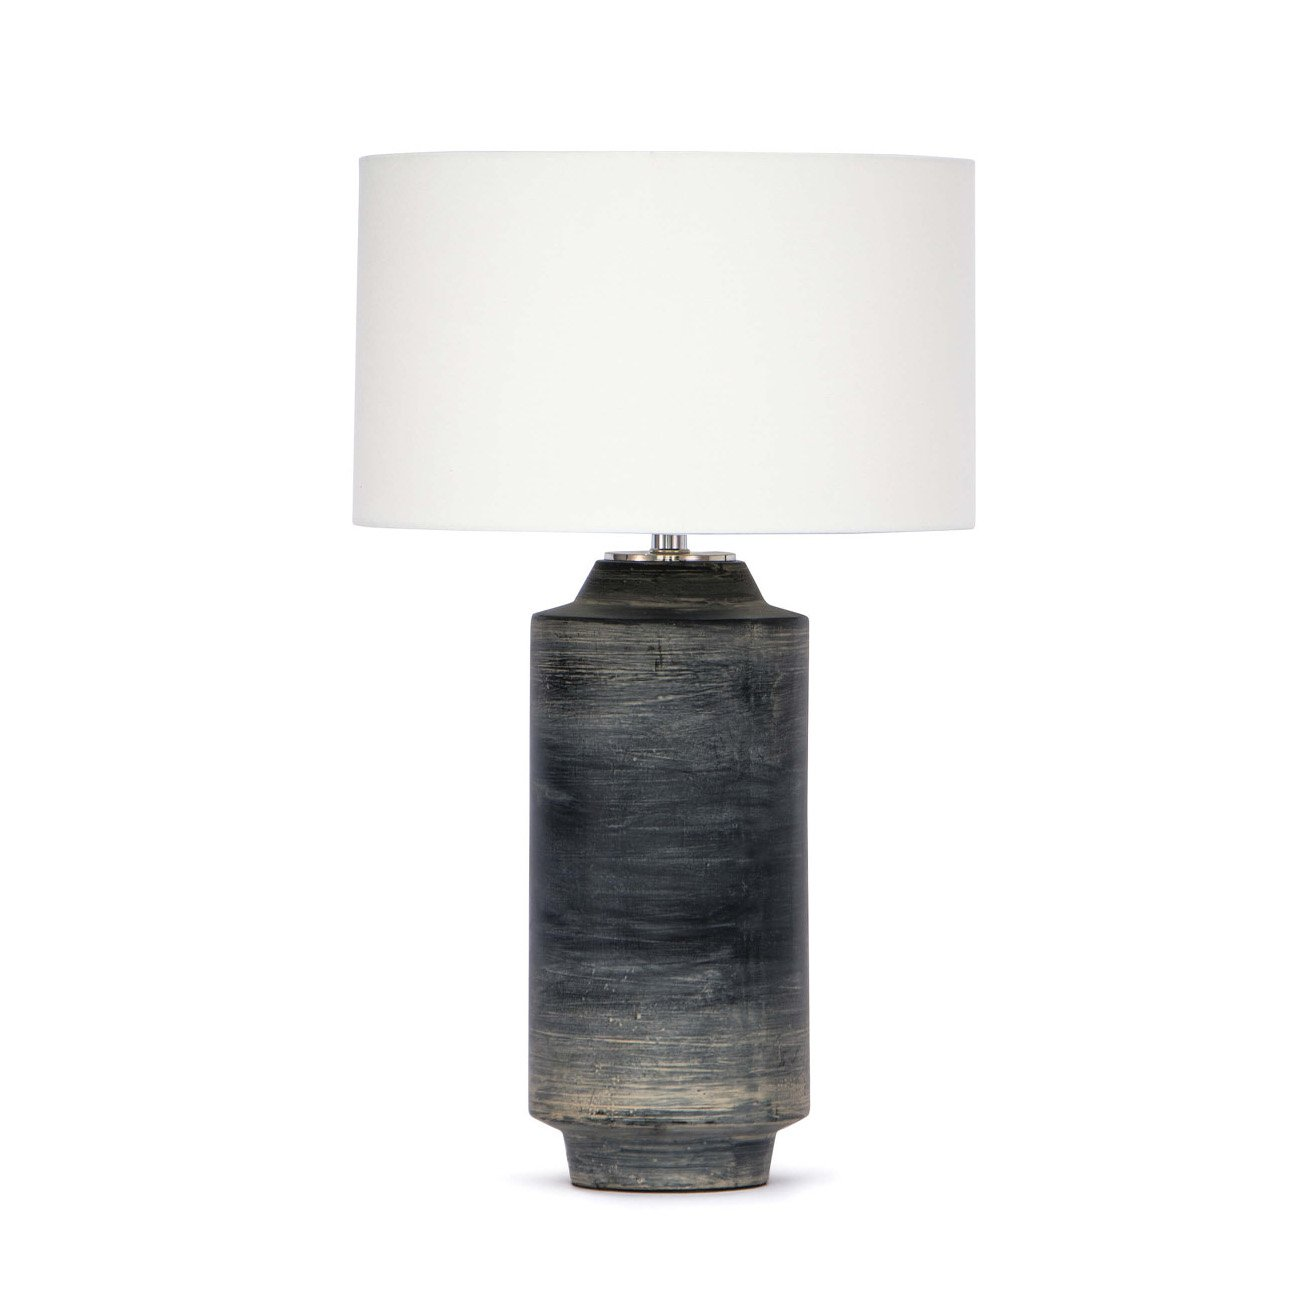 DAYTON CERAMIC TABLE LAMP BY REGINA ANDREW